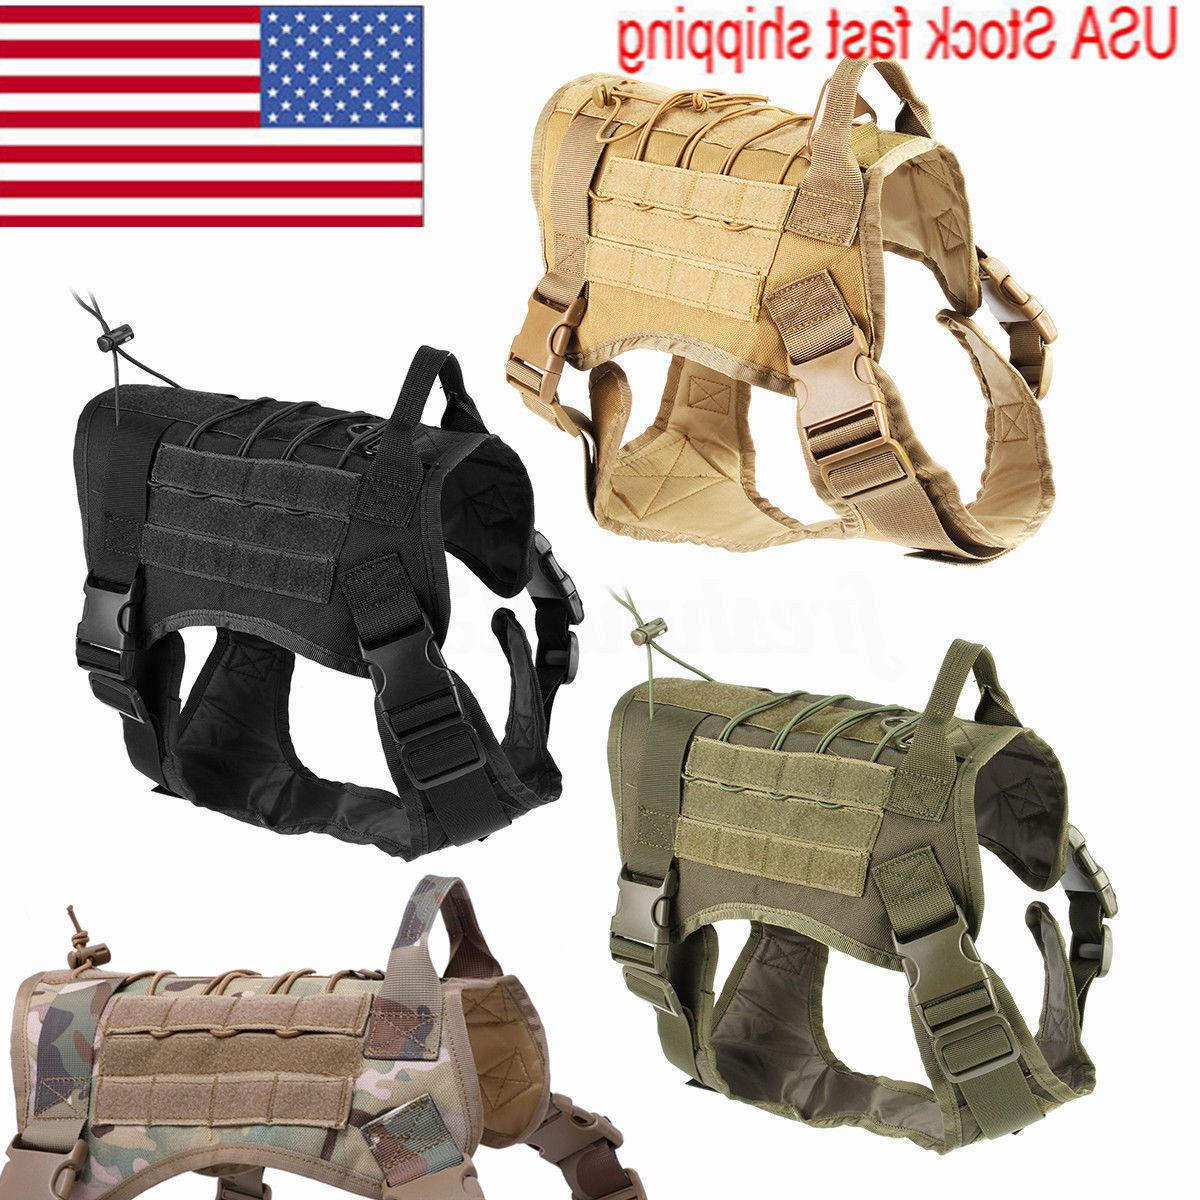 Military Tactical Training K9 Dog Harness Nylon Vest for Pol